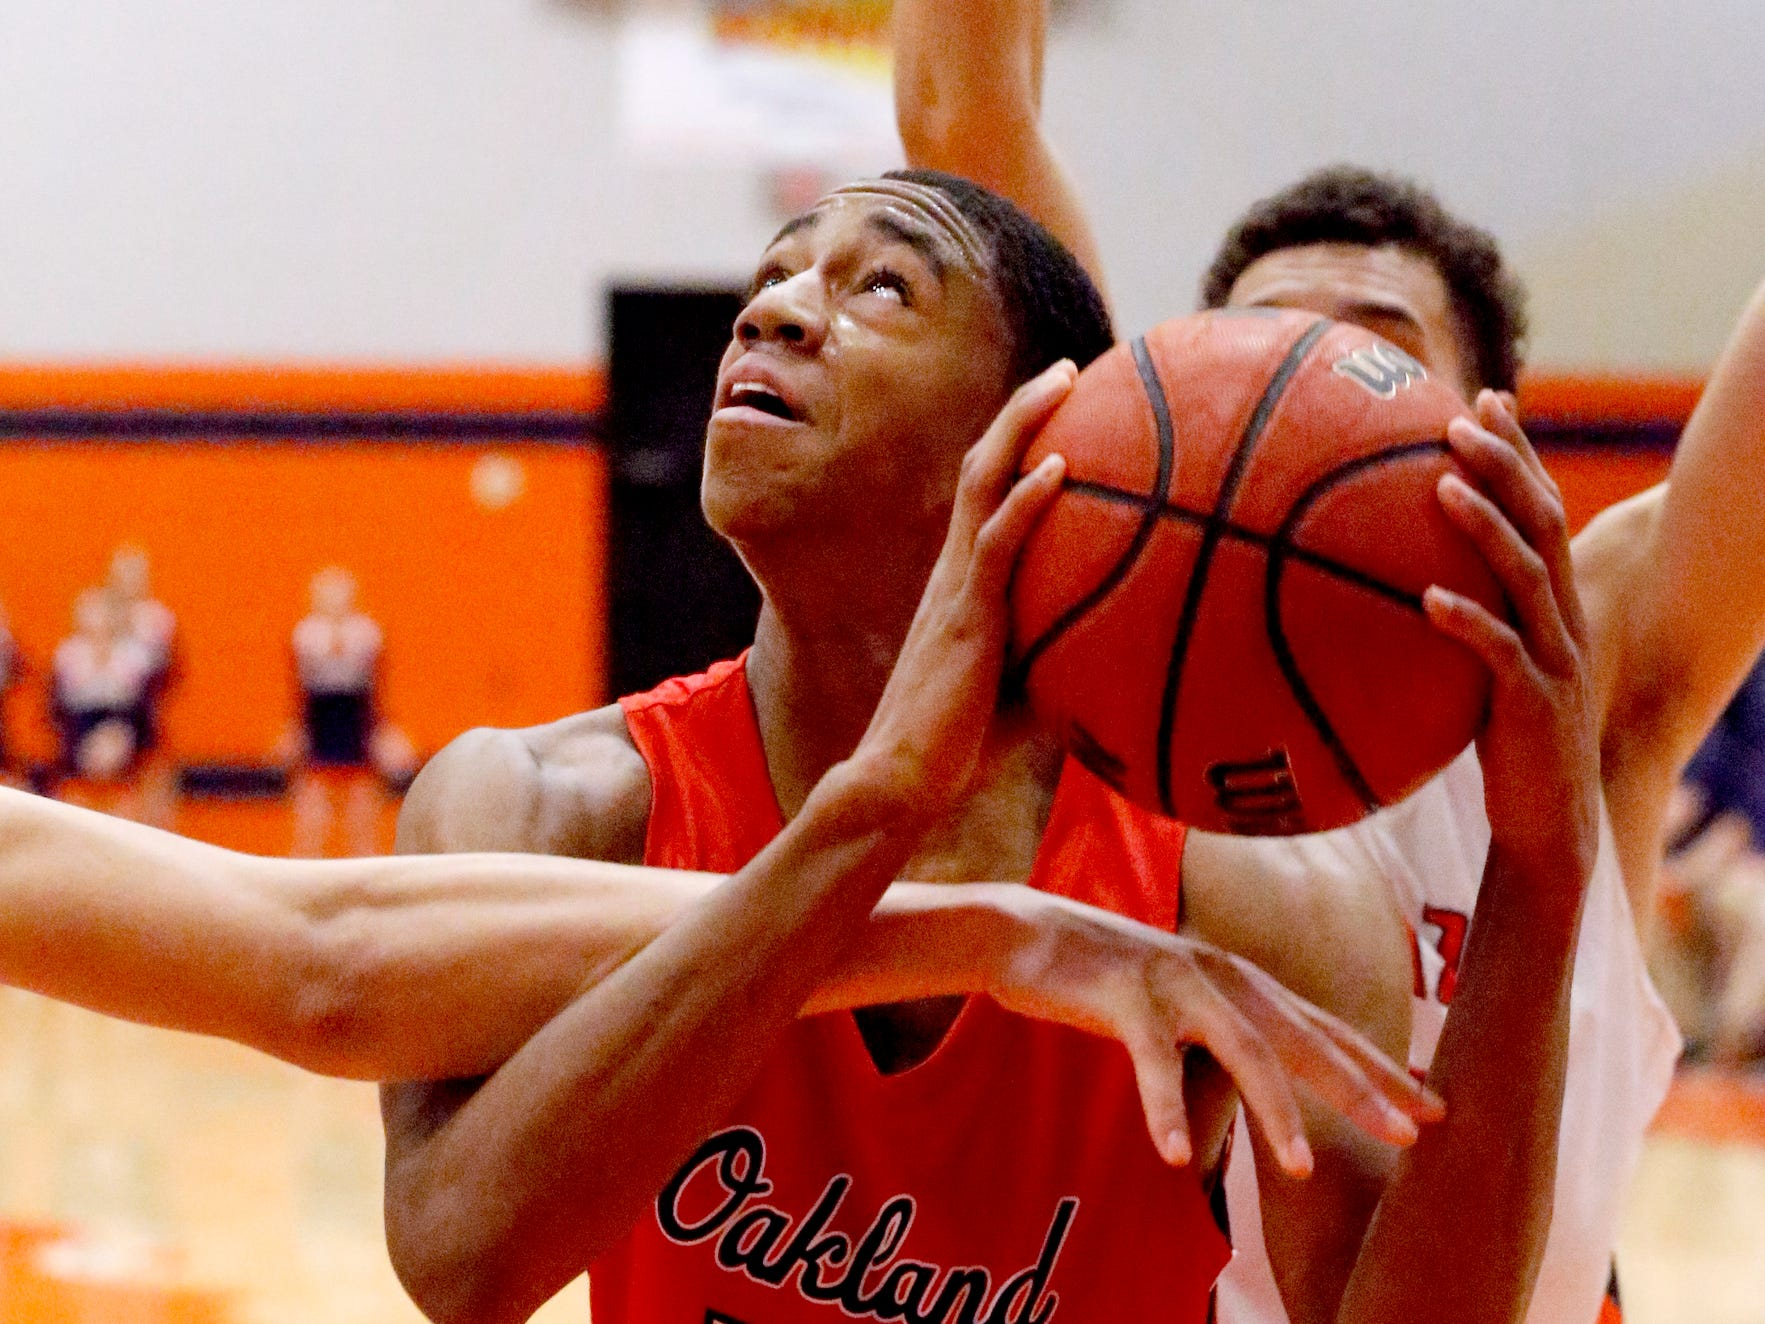 Oakland's DD Anderson (23) is fouled as he goes up for a shot during the game against Blackman on Friday, Feb. 8, 2019.